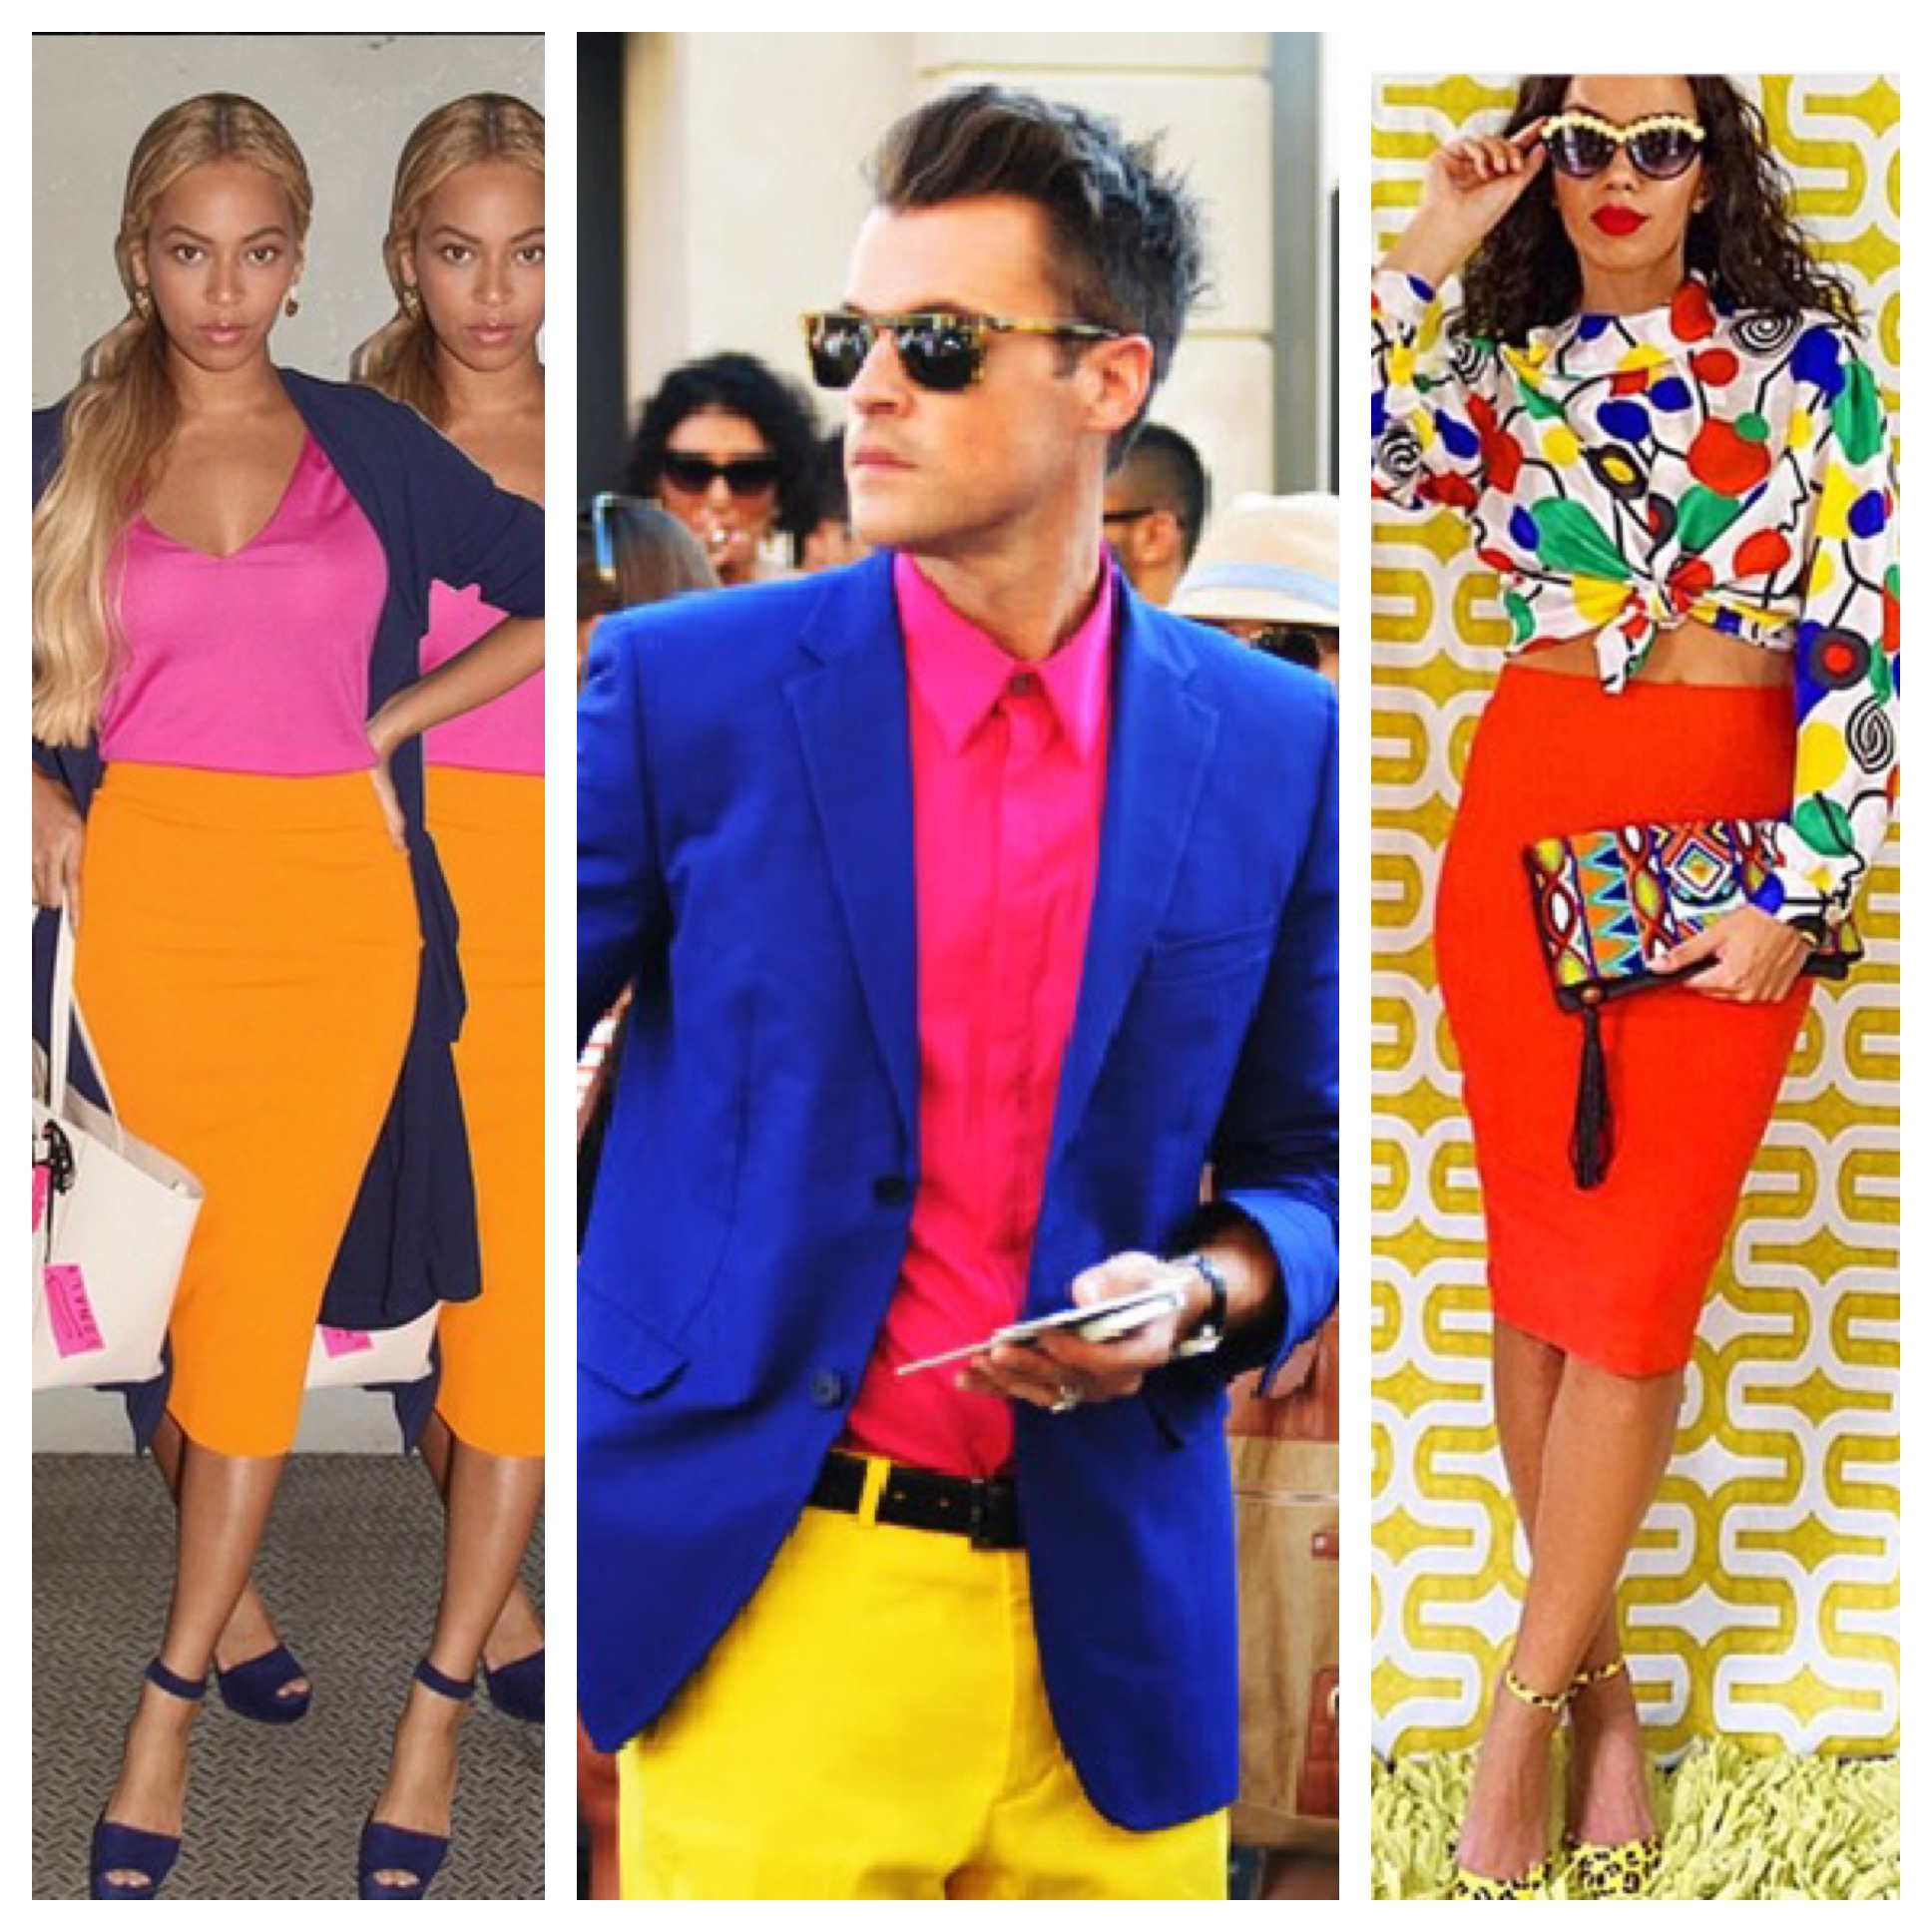 Watch Bright Colour Blocking Trend video